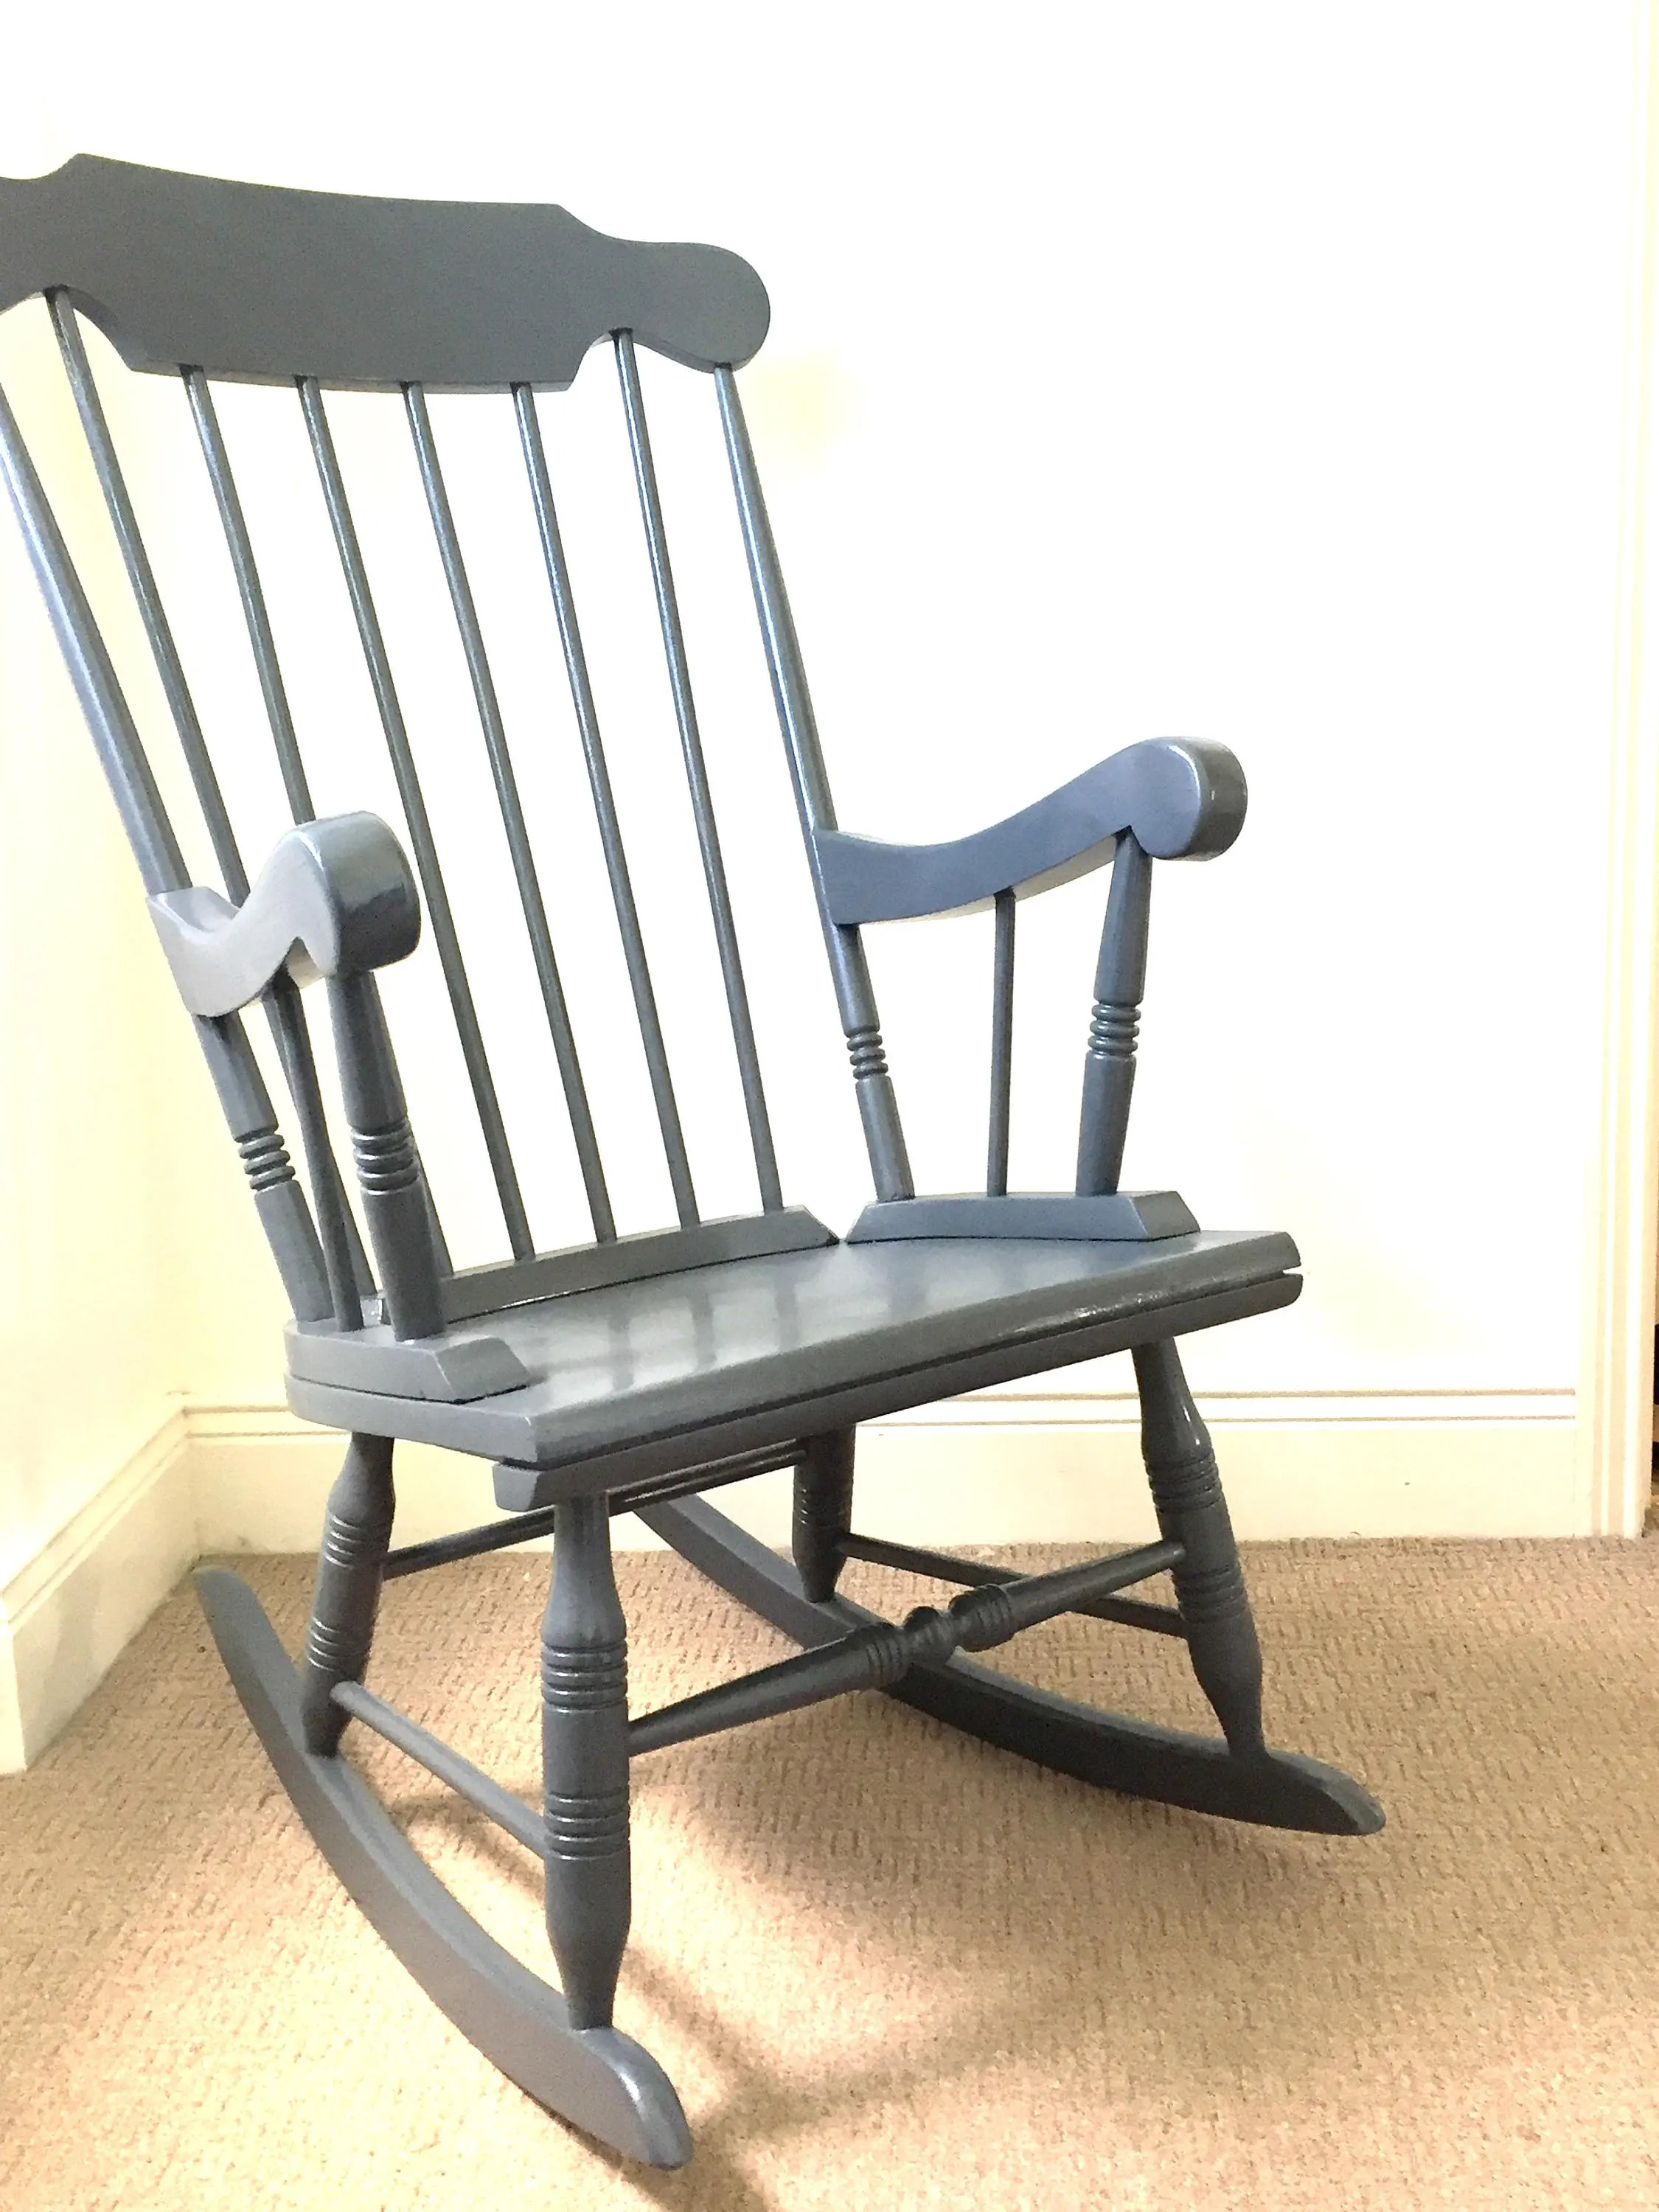 Grey Nursing Chair Made To Order Vintage Hand Painted Grey Rocking Chair Nursing Chair Nursery Upcycled Retro Shabby Chic Bespoke